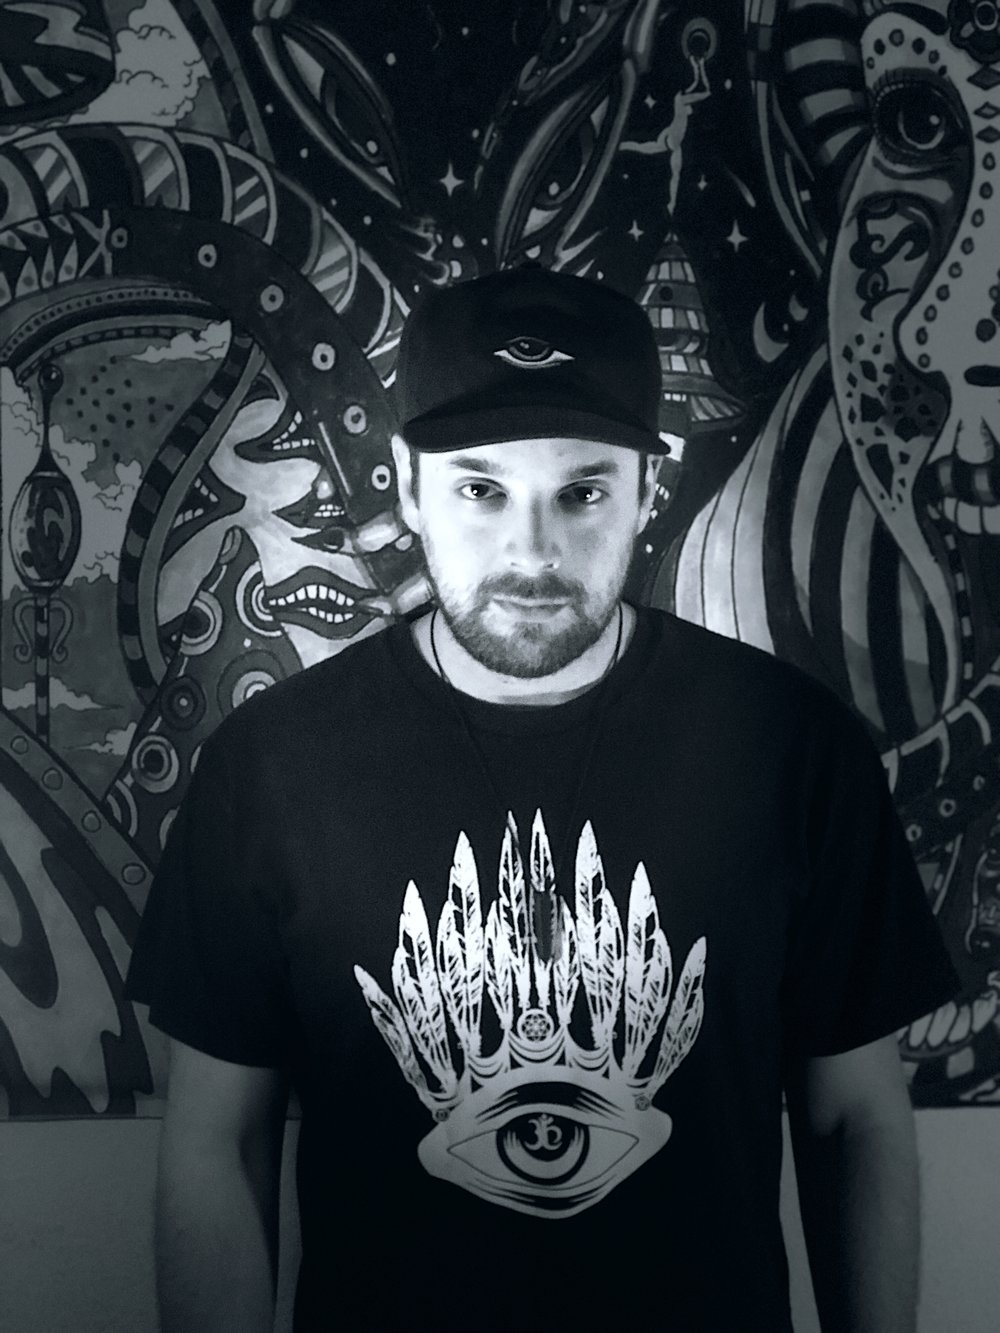 """ADVI(Jacob Holguin) - Chief / Founder                                           IG/Twitter: @djadviJacob Holguin aka ADVI is a Los Angeles based DJ/Producer born on January 1, 1986. ADVI is pronounced """"86."""" Born and raised on the East Coast in Connecticut- Jacob became heavily influenced by electronic music at the young age of 9. Since then, Jacob moved to Los Angeles, CA- dedicated his life to creating and expressing himself through music and runs an Awake & Conscious Art/ DJ Collective called the """"3rd Eye Tribe.""""ADVI is a familiar name in the LA Underground scene. He began DJing events in 2012 and can most commonly be seen playing sets at Avalon & Los Globos After hours aside from a slew of regular """"Secret Location"""" Warehouse Events. Some of ADVI's biggest influences include; Pete Tong, Carl Cox, Mark Knight & Eric Prydz. ADVI's sound can be described as dark, groovy, hypnotic & melodic. ADVI is also a resident DJ for the popular- Modern Disco Ambassadors and Lab Sessions on Subliminal Radio. If you don't get a chance to make it out to one of his shows, ADVI is aired globally through his Lab Sessions Residency with Subliminal Radio on the last Friday of every month."""